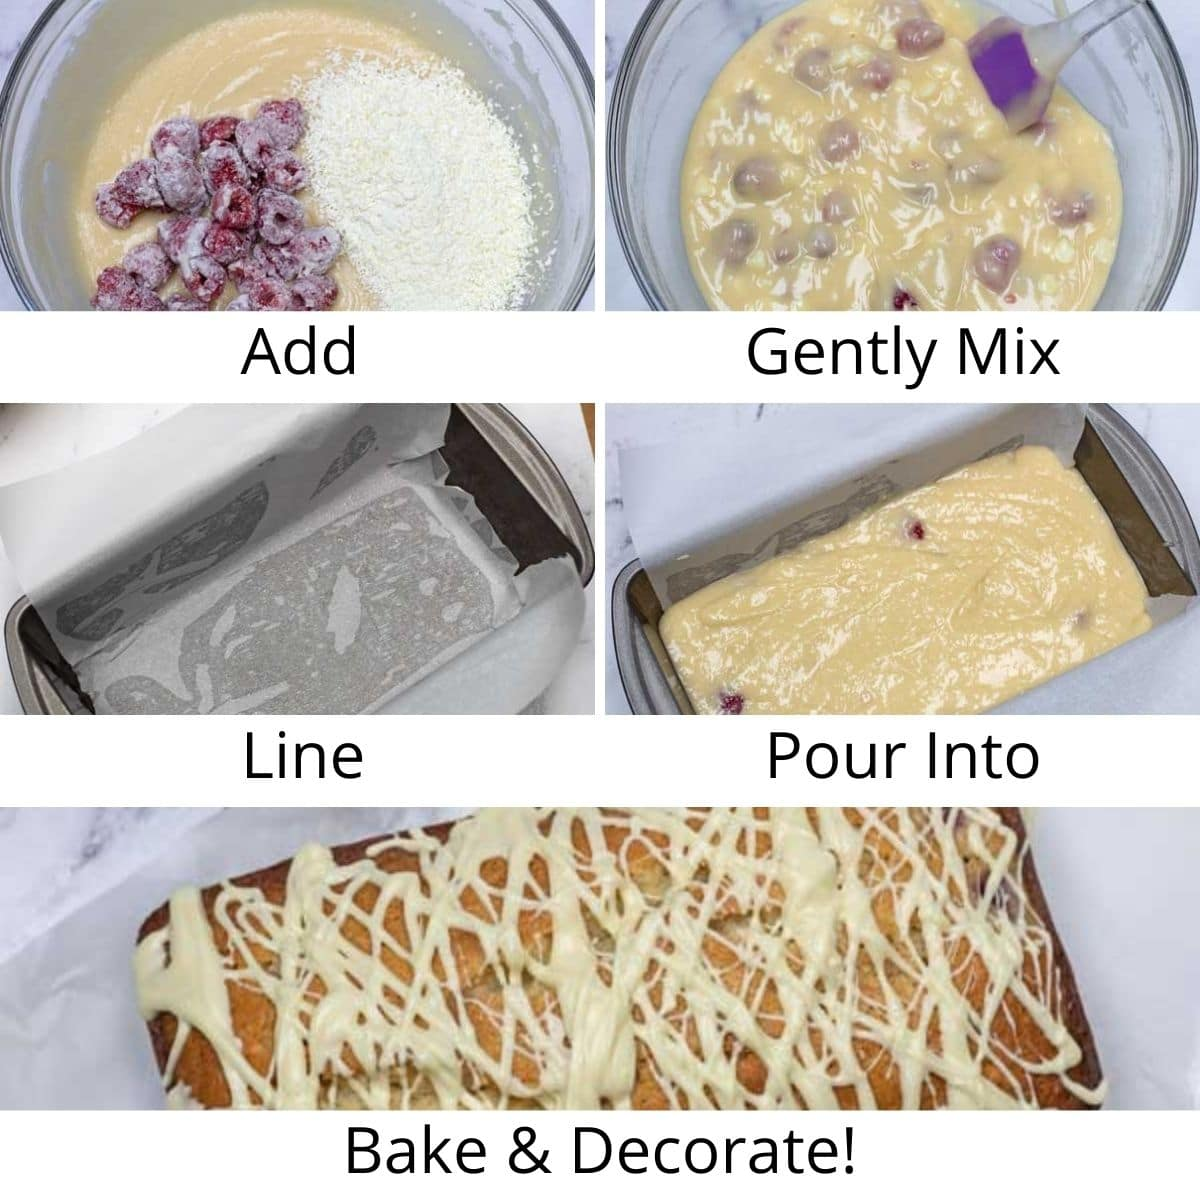 Step by step process photos of making the loaf cake.